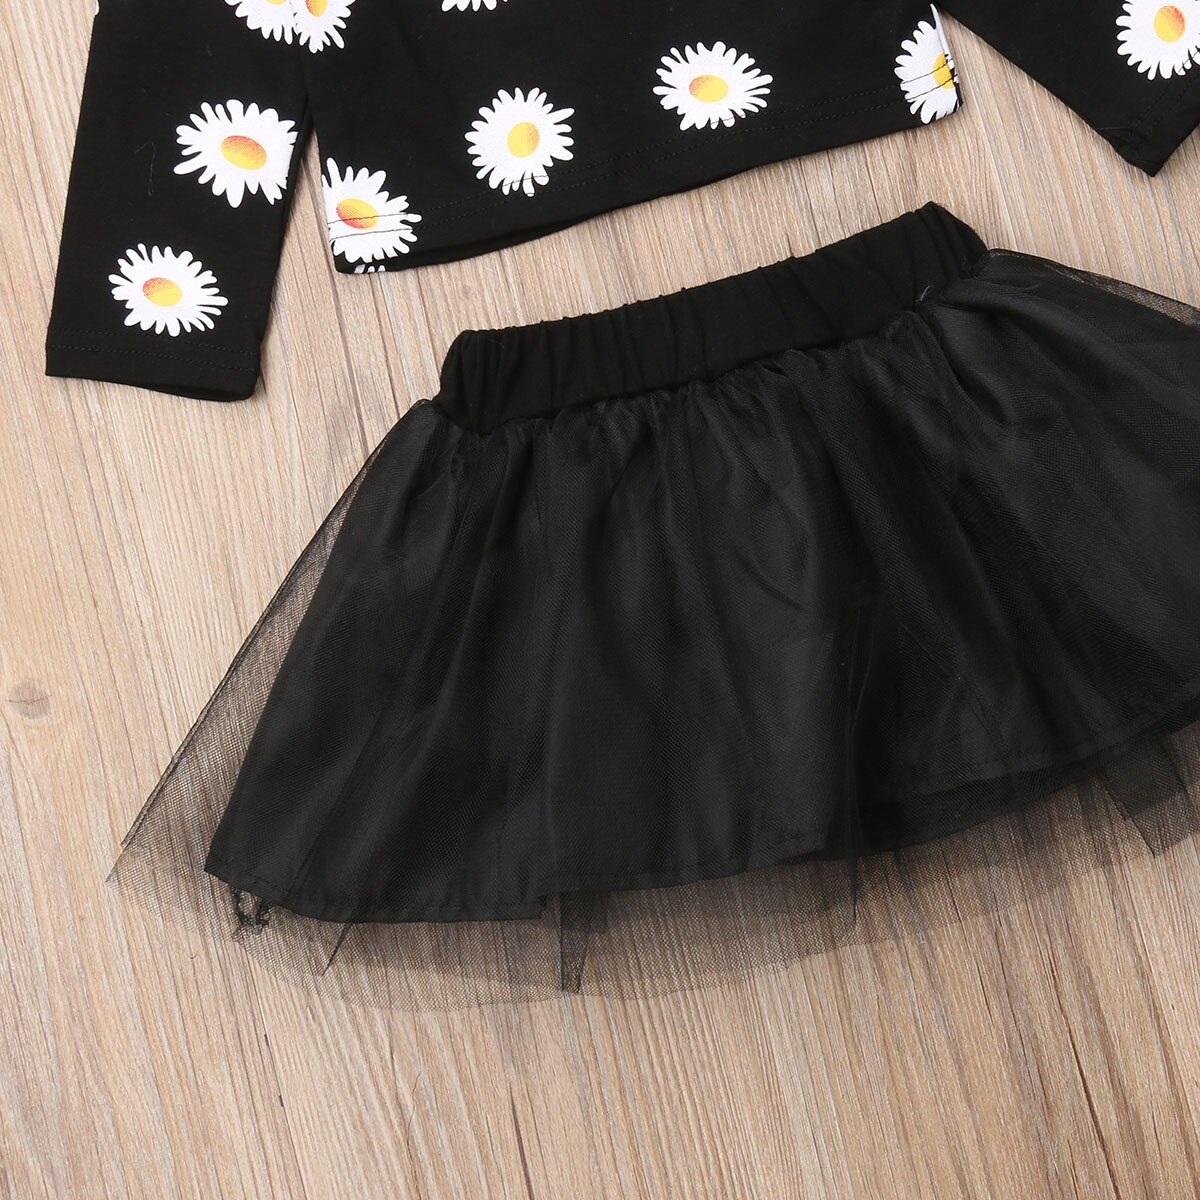 Fashion Newborn Baby Girls Flower Long Sleeve Tops Tulle Skirt Outfits Clothes-i image 4